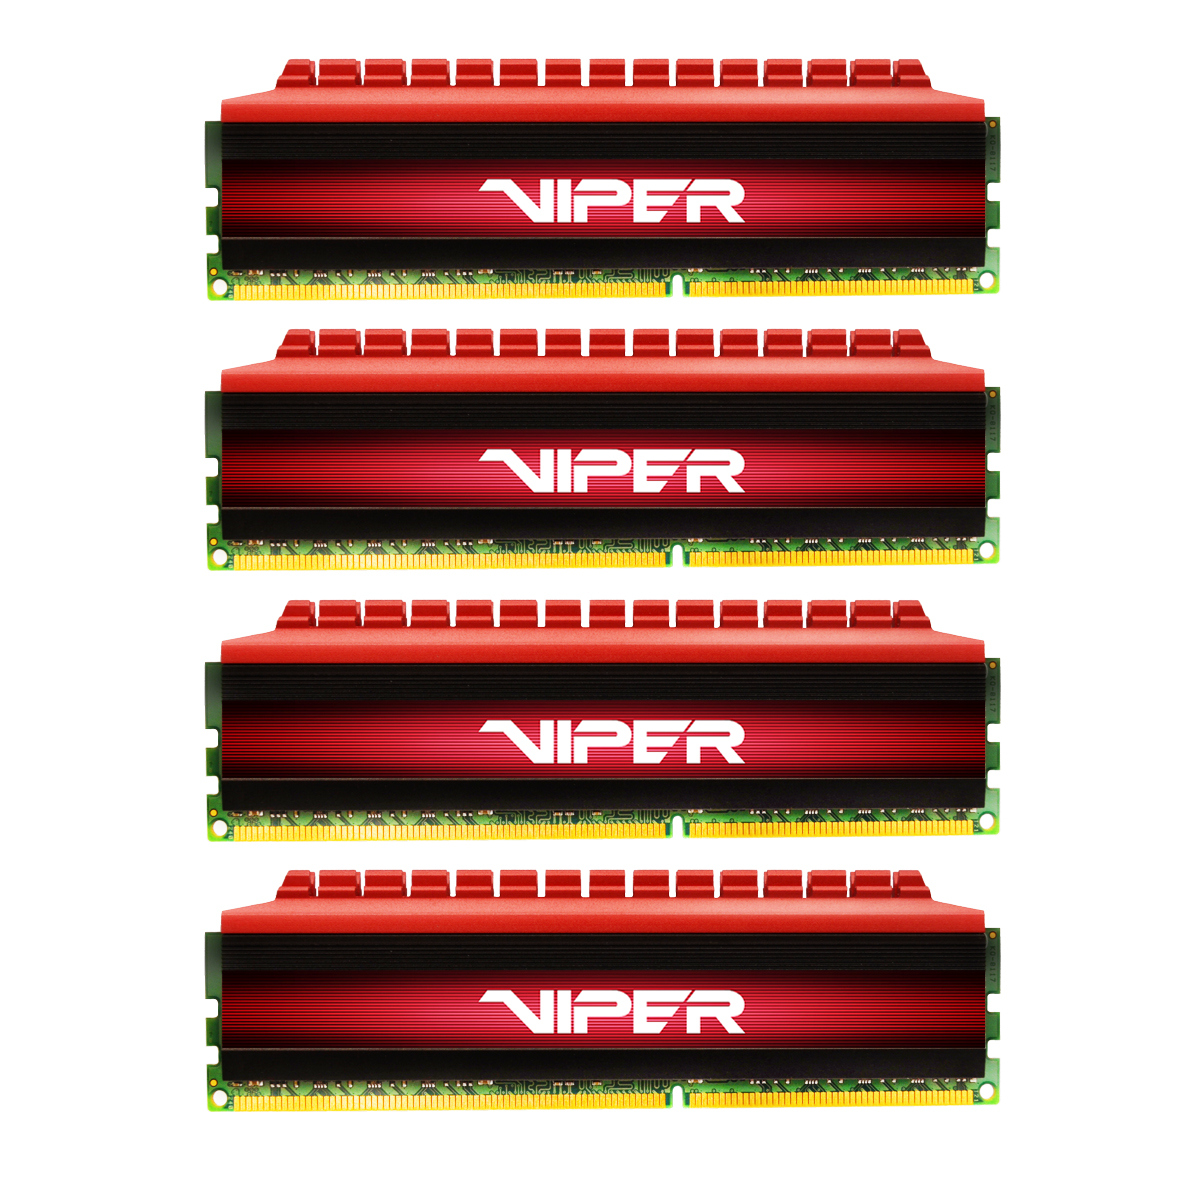 Patriot Announces New Viper 4 3600MHz Dual-Channel Memory Kit